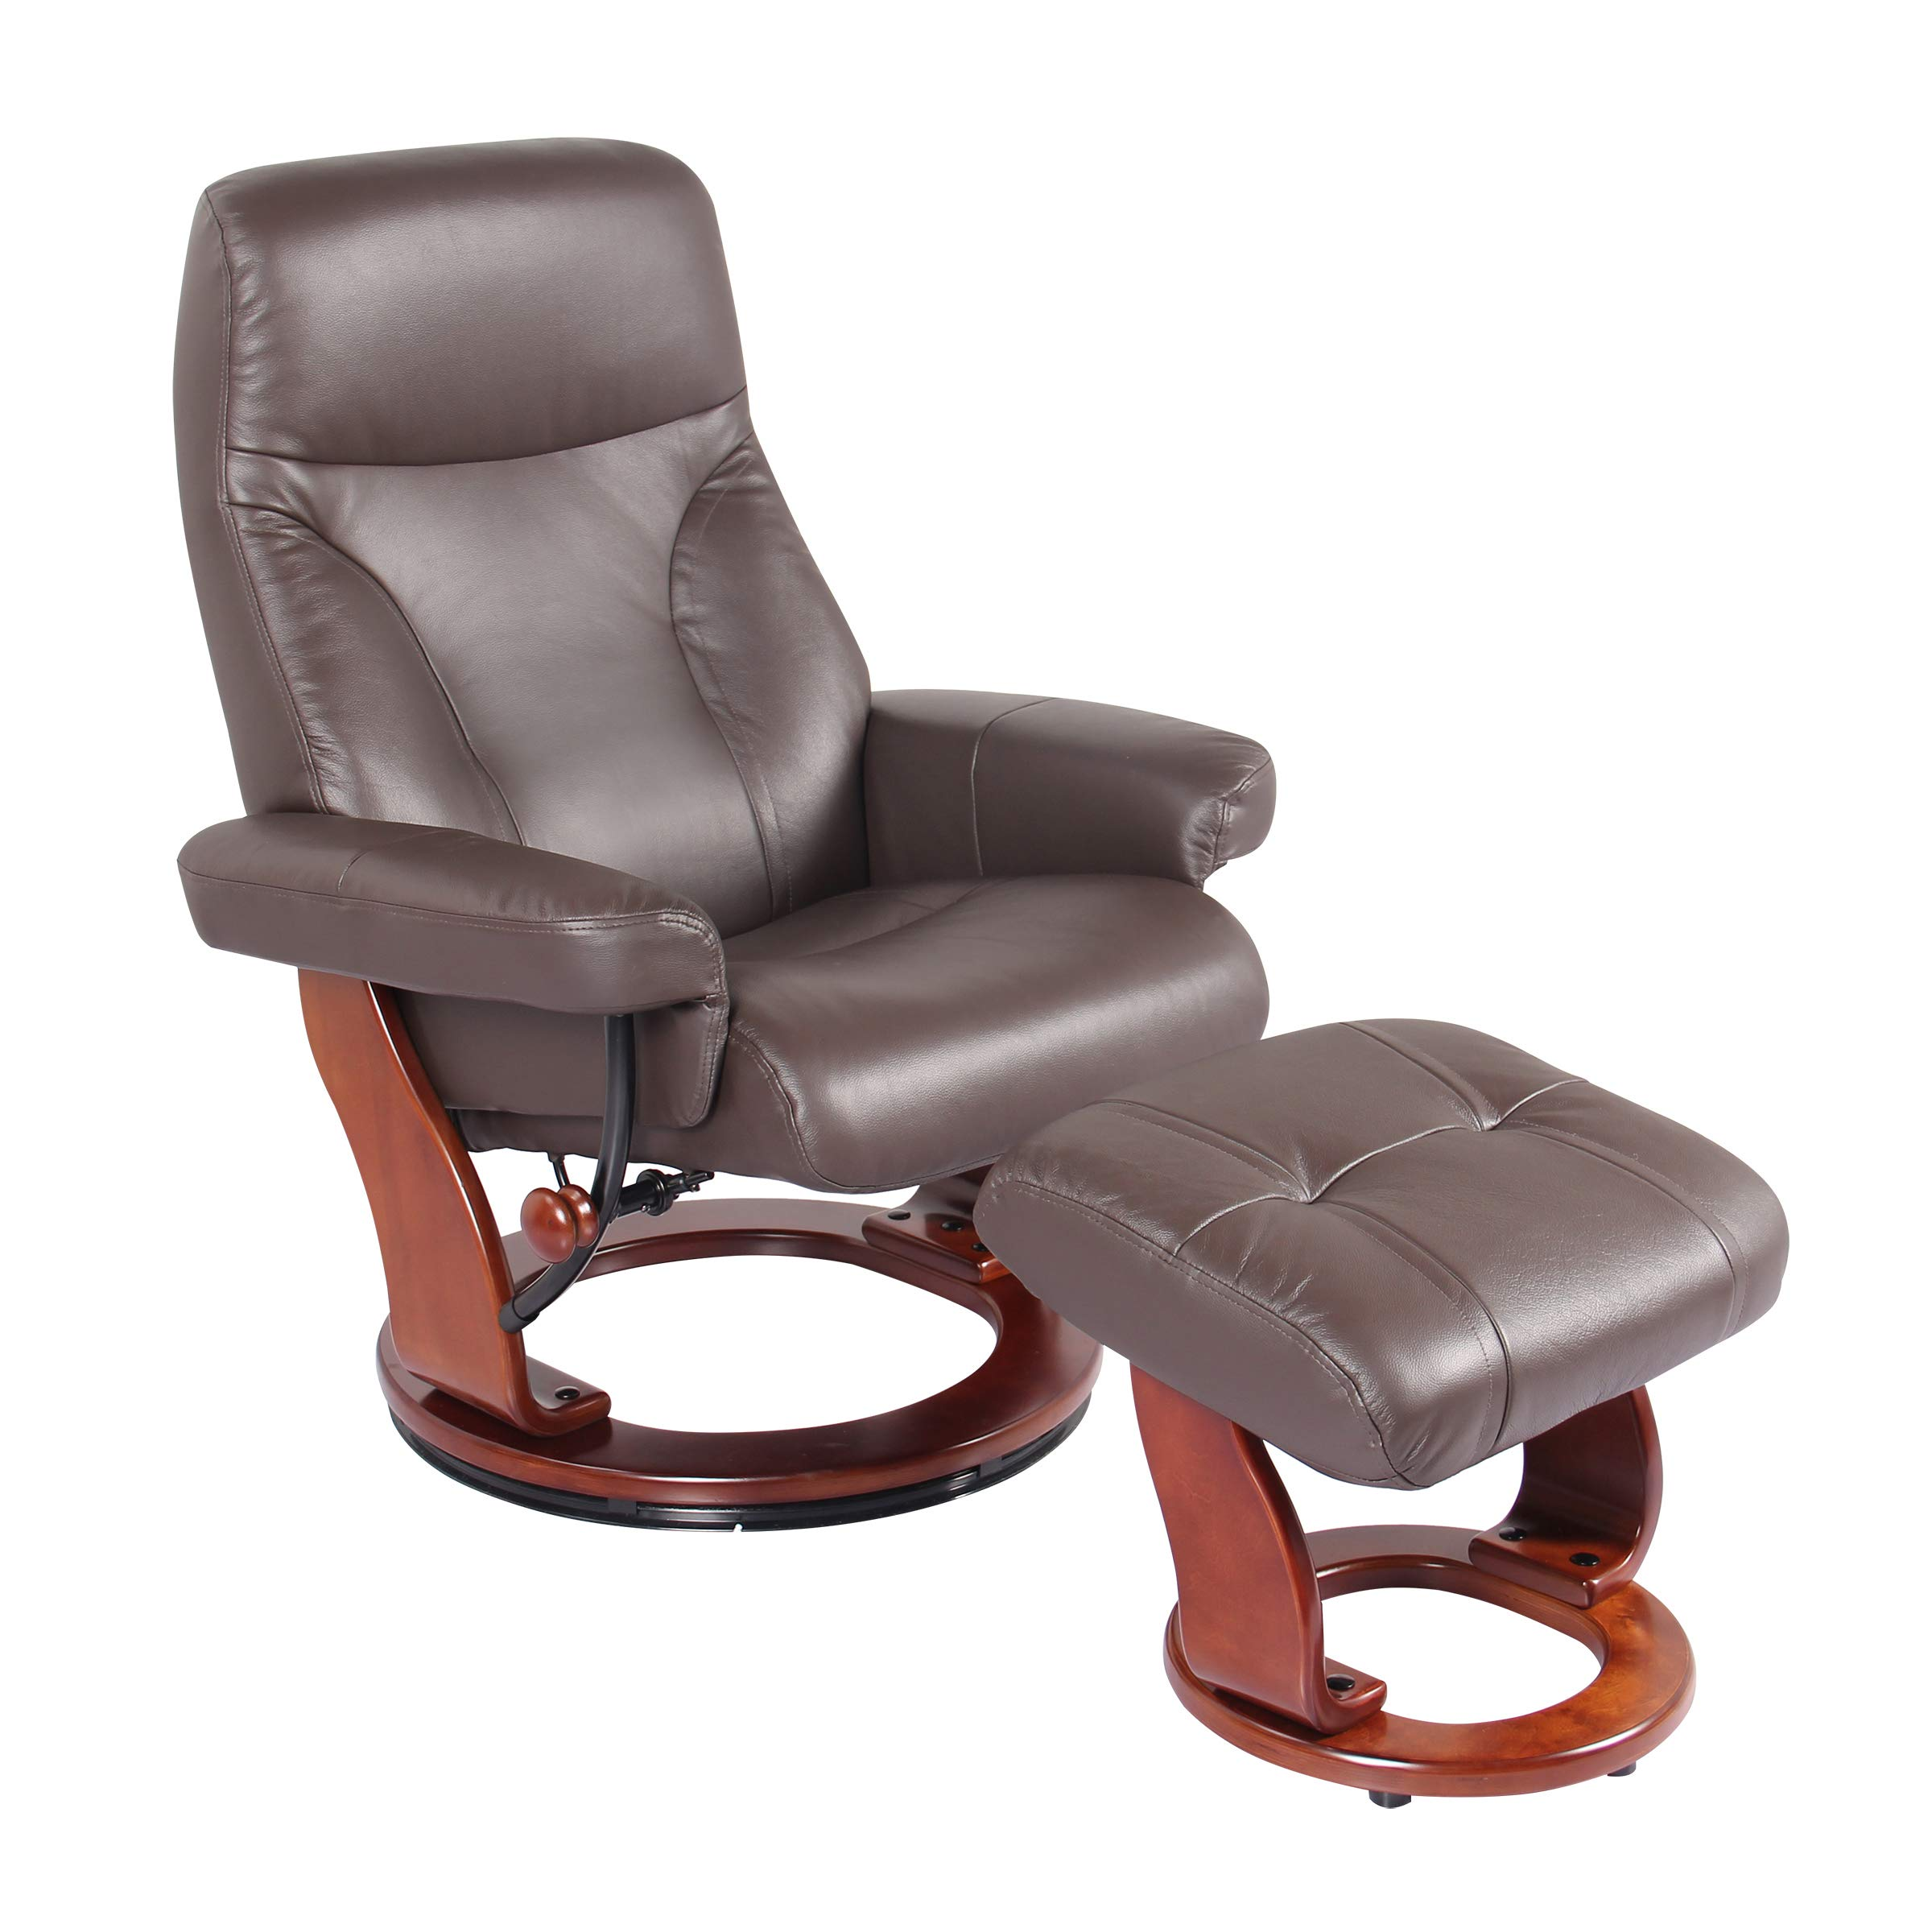 Coja by Sofa4life Leather Recliner and Ottoman Brown by Coja